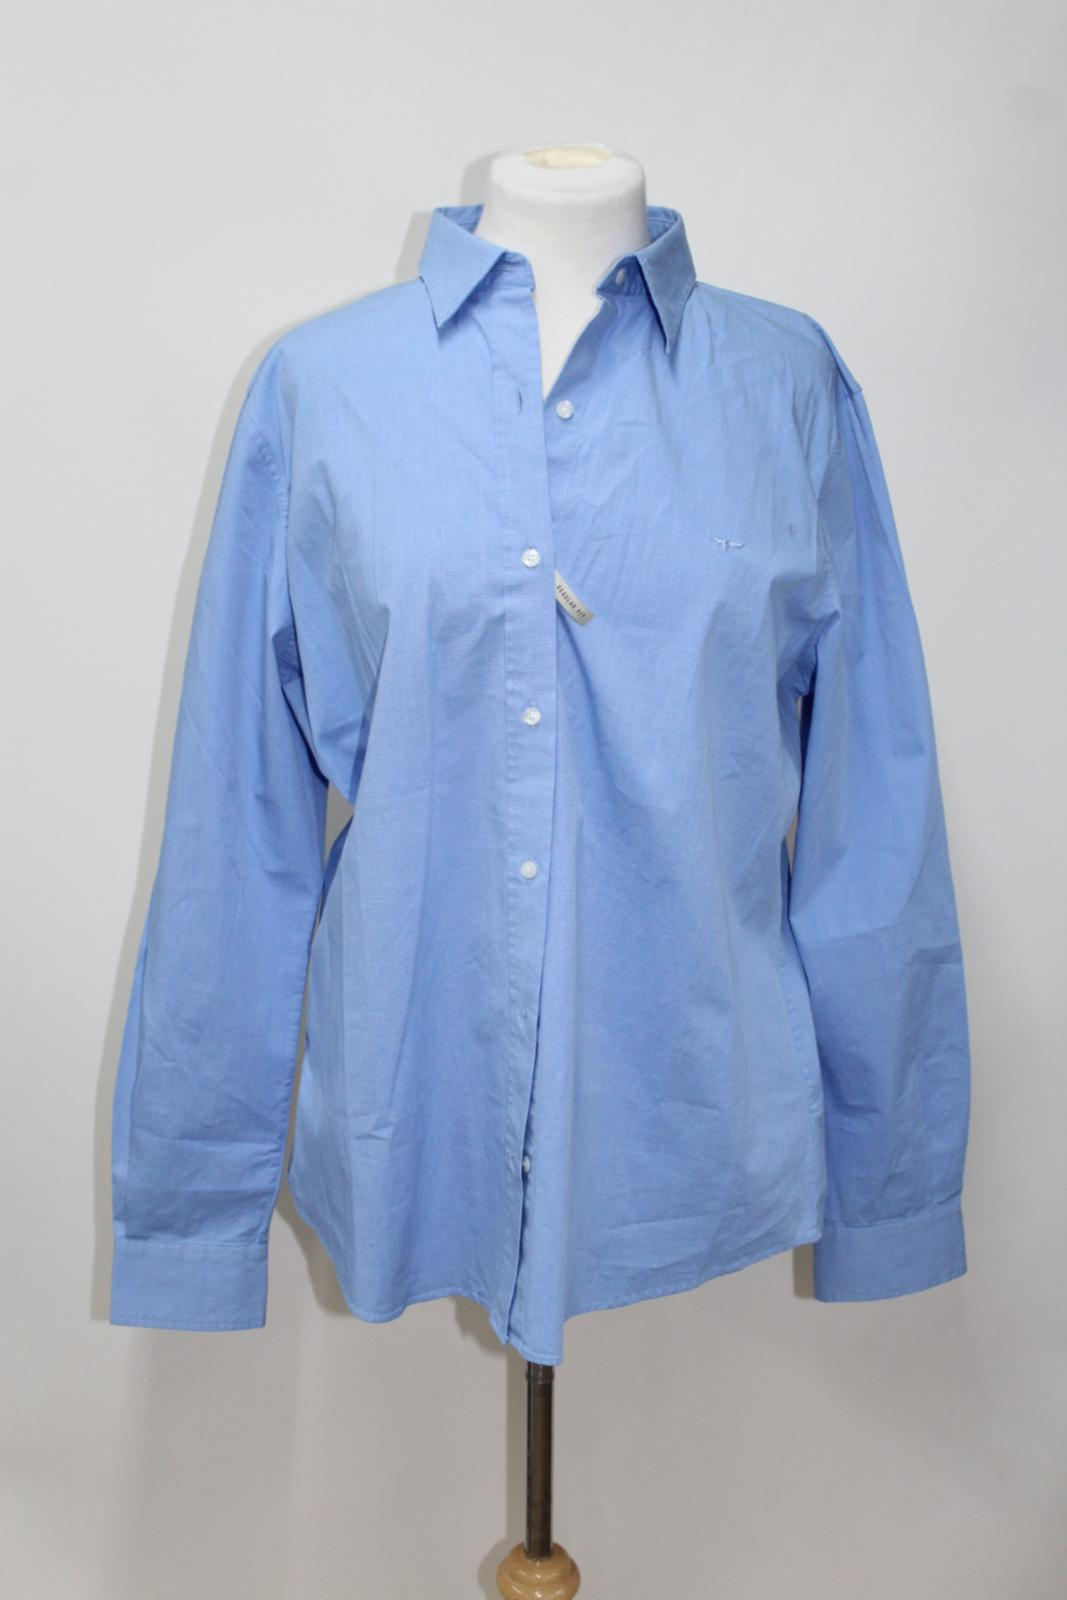 Nicole Bnwt Williams R Cotton Cornflower Blue Uk16 Stretch Shirt Ladies m wwI4a